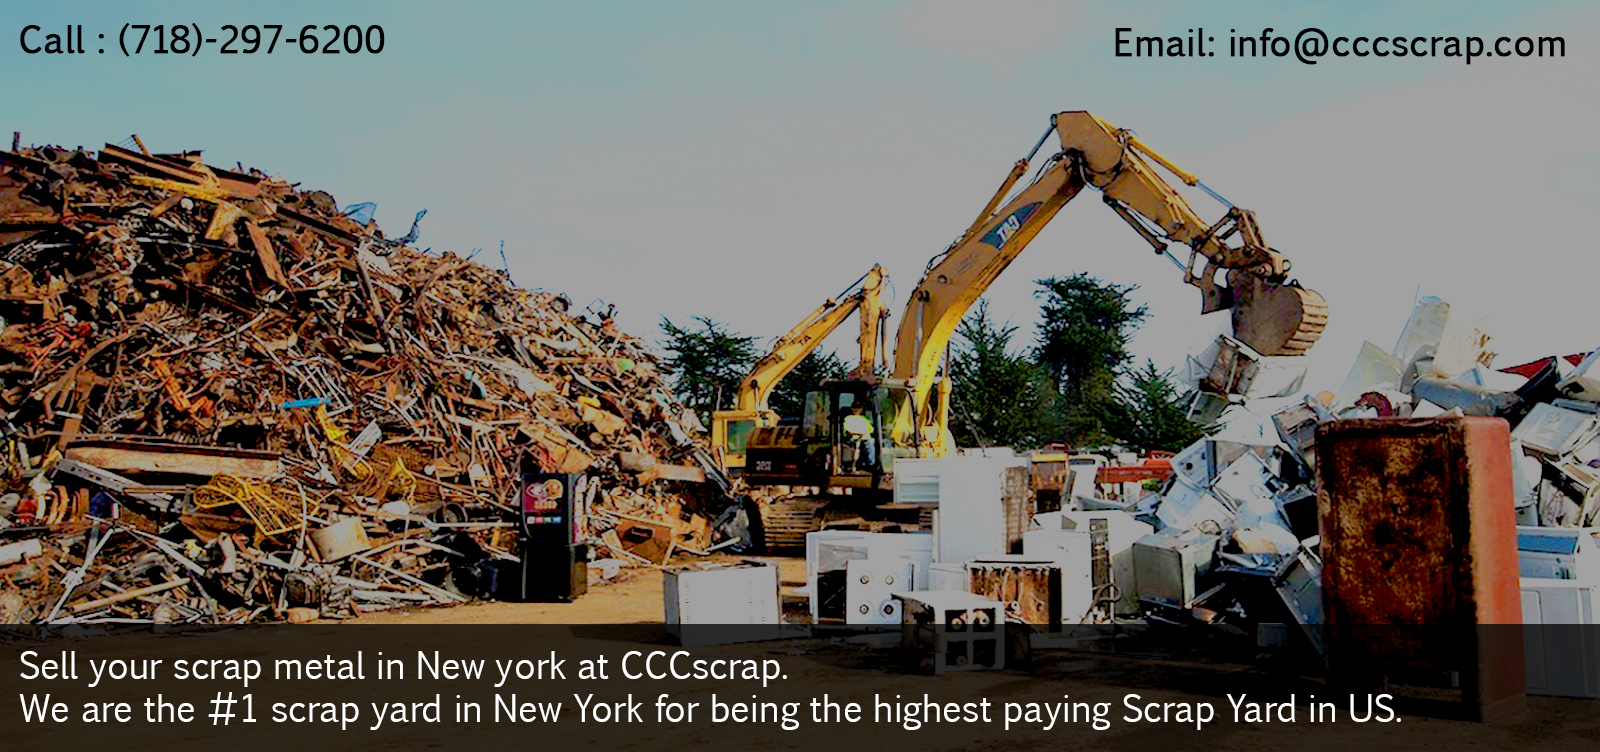 How to find out the apt Scrap Metal Prices in Brooklyn?